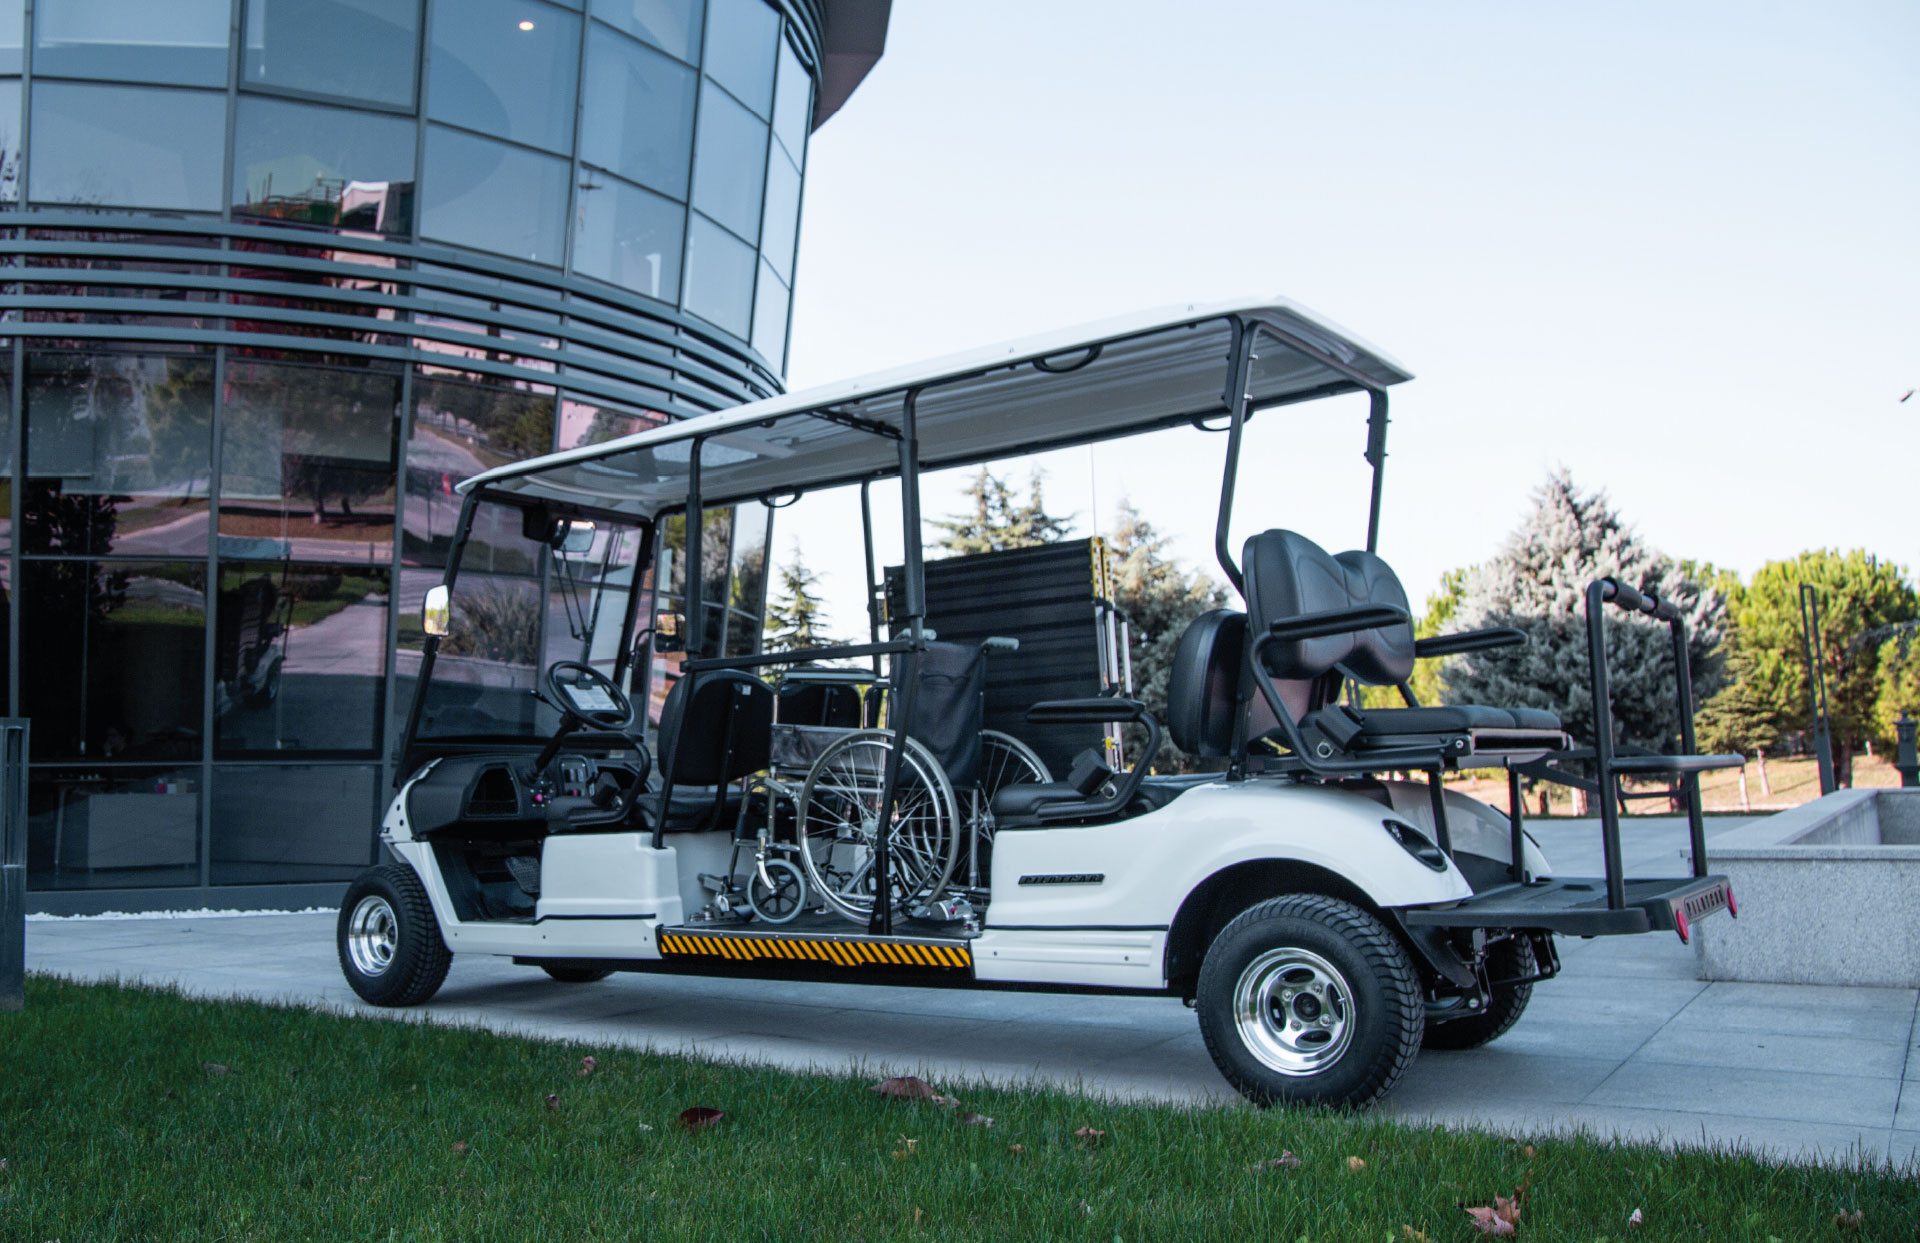 PC-H Electric Handicapped Vehicle